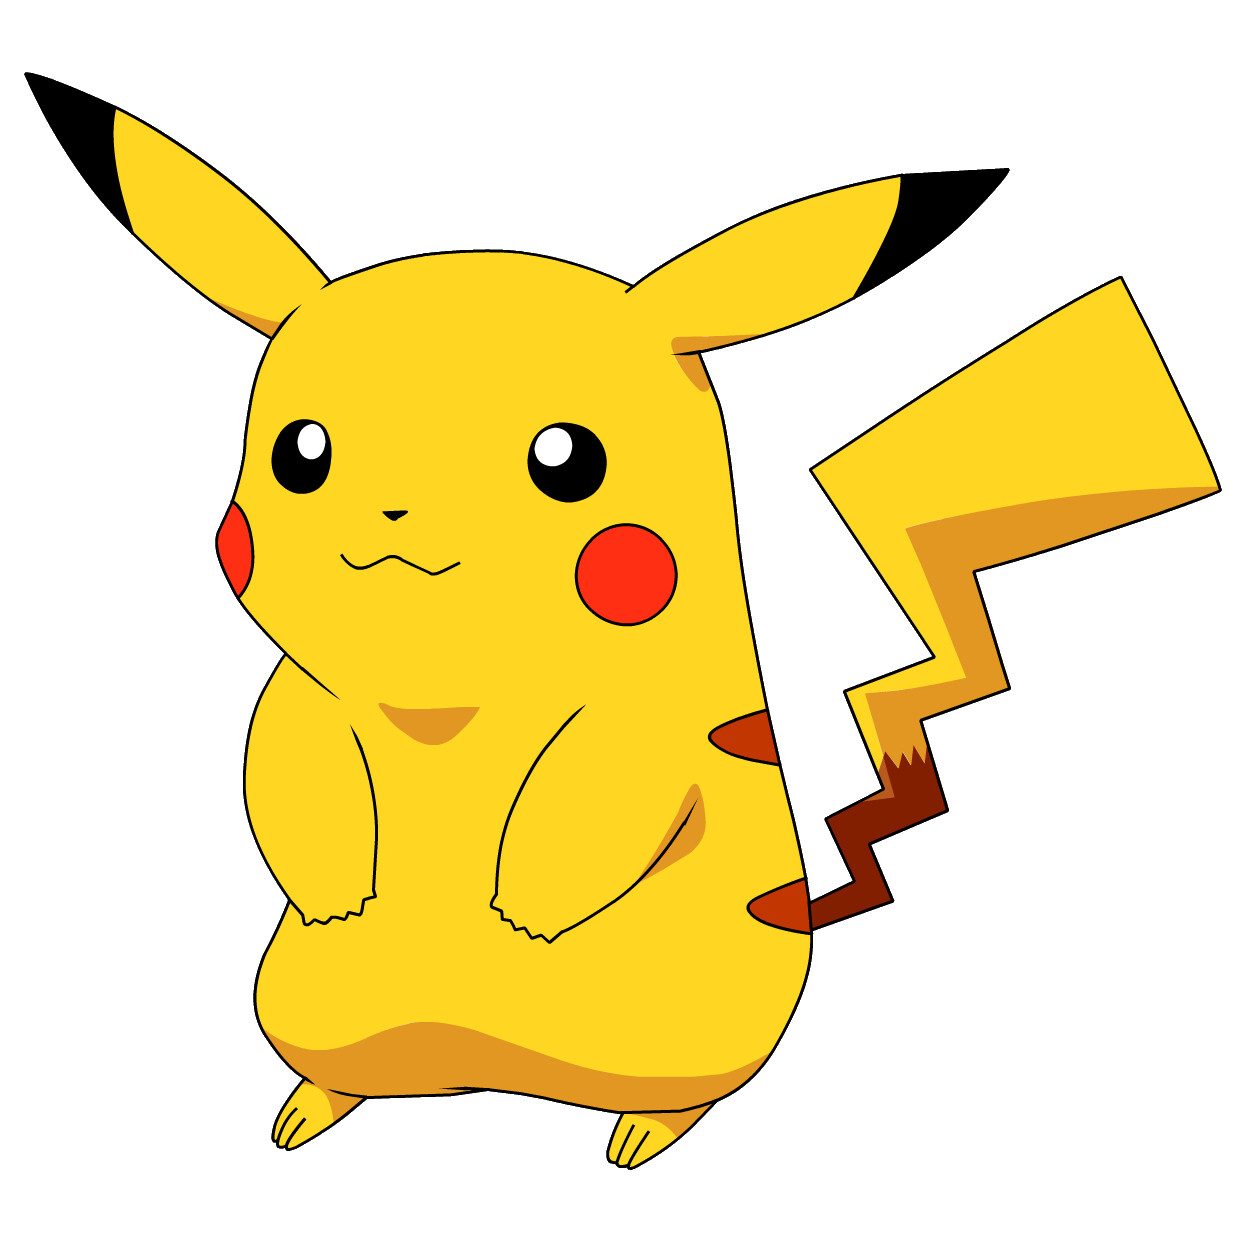 Pikachu  the instantly recognizable Pokemon mascot  image from